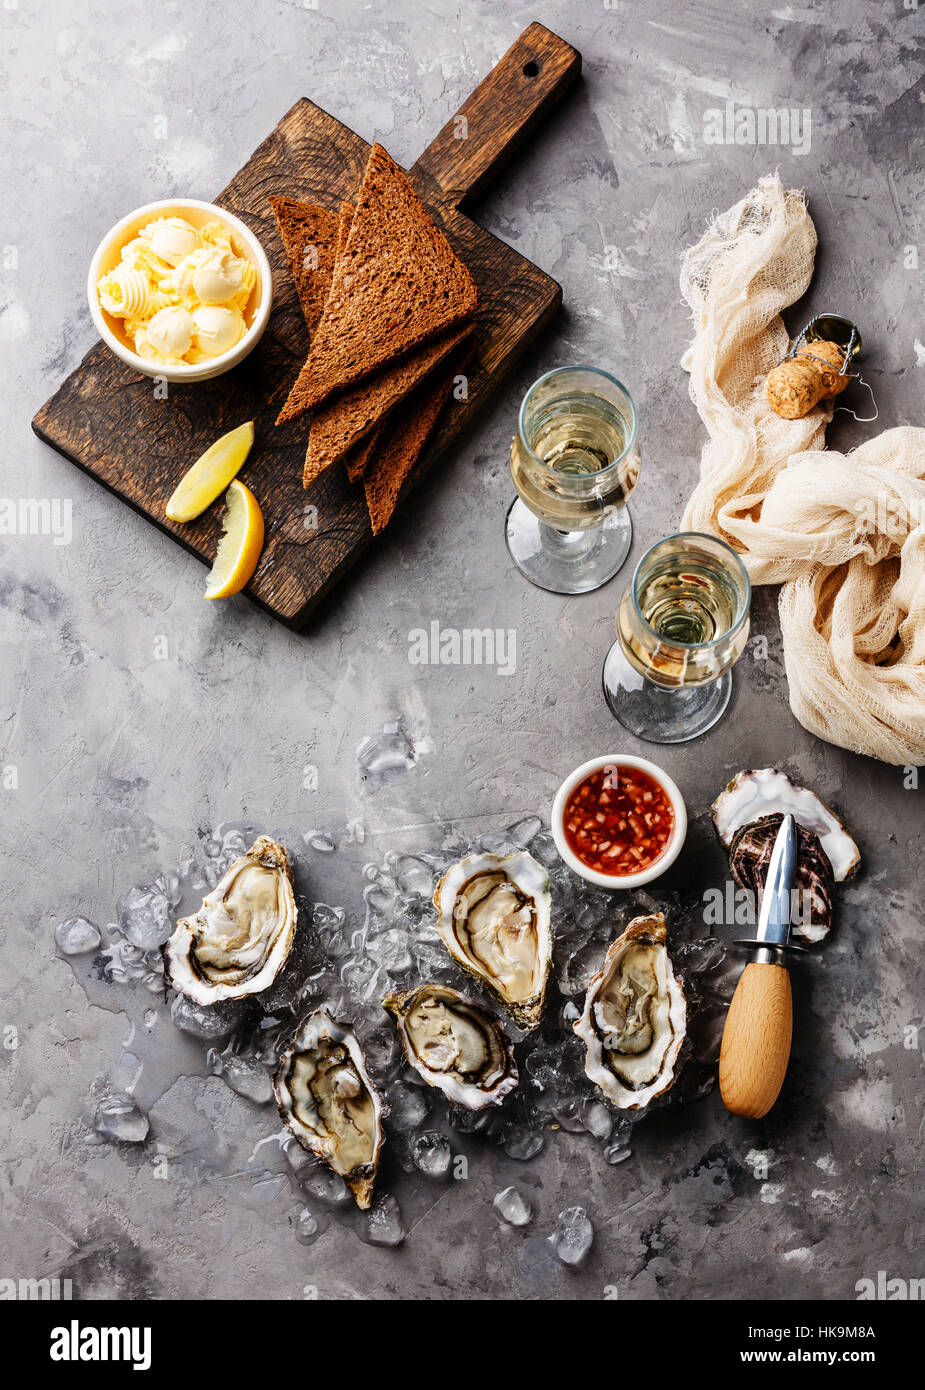 Open Oysters with bread and butter and champagne on gray concrete texture background - Stock Image